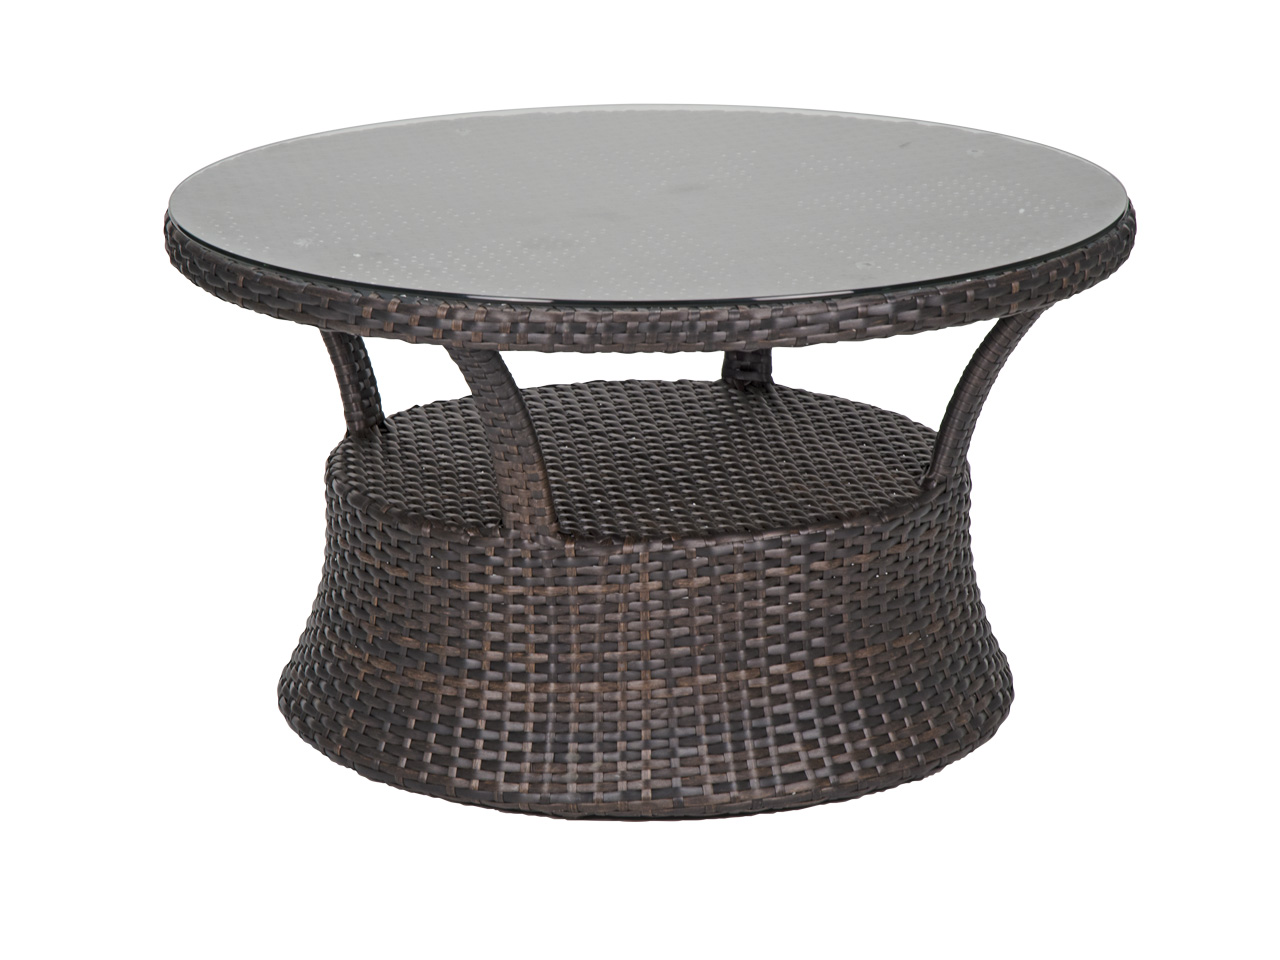 coffee and side tables fortunoff backyard wickr glass top outdoor table san lucas round aluminum woven resin wicker conversation battery powered living room lamps entryway lamp